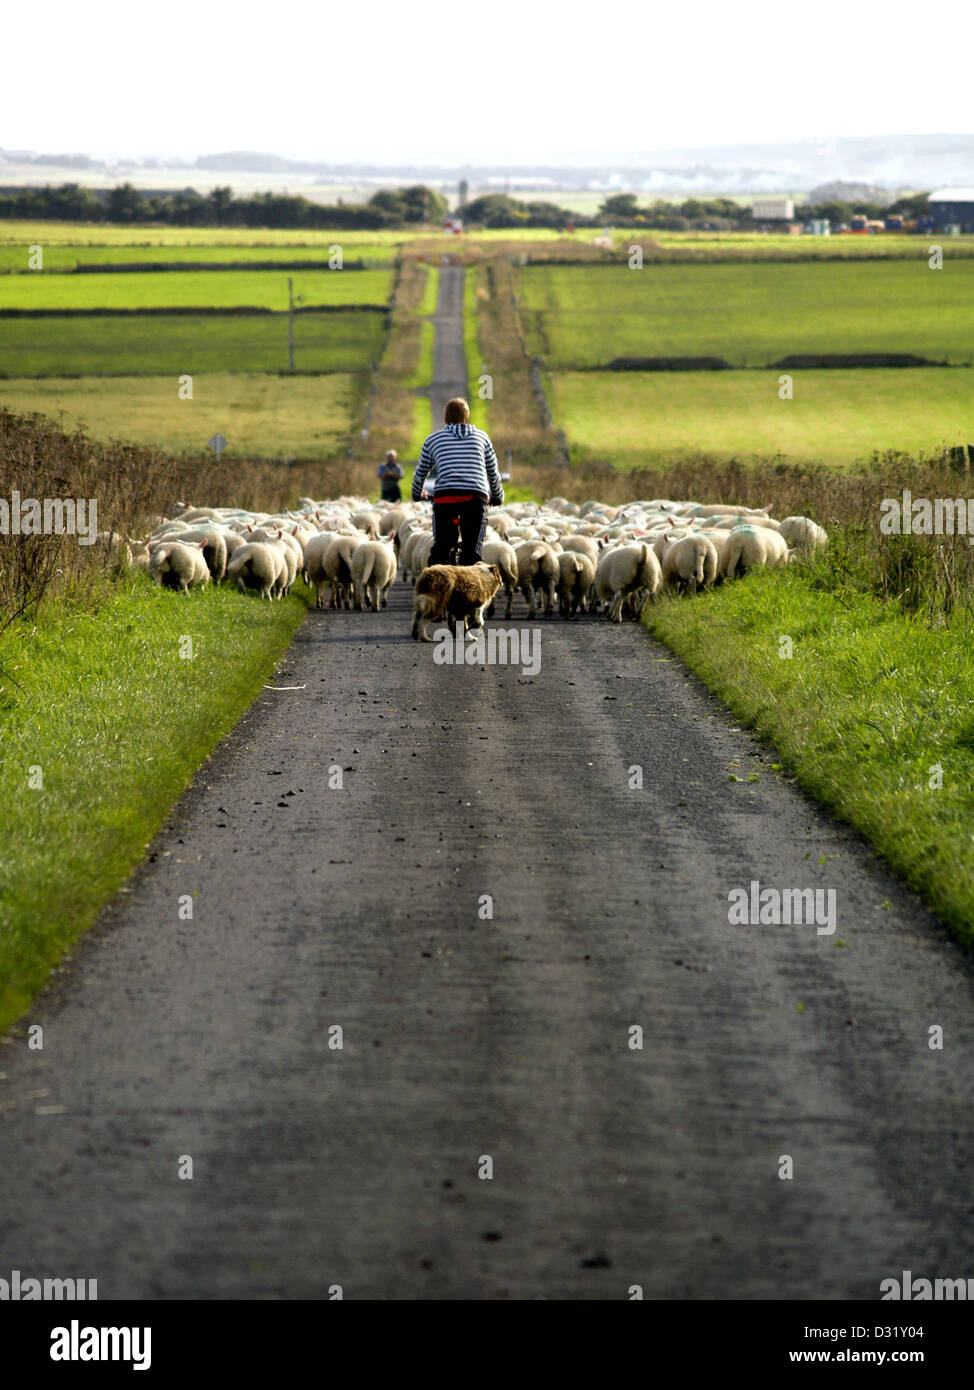 Moving the sheep on a road in the Scottish Highlands - Stock Image